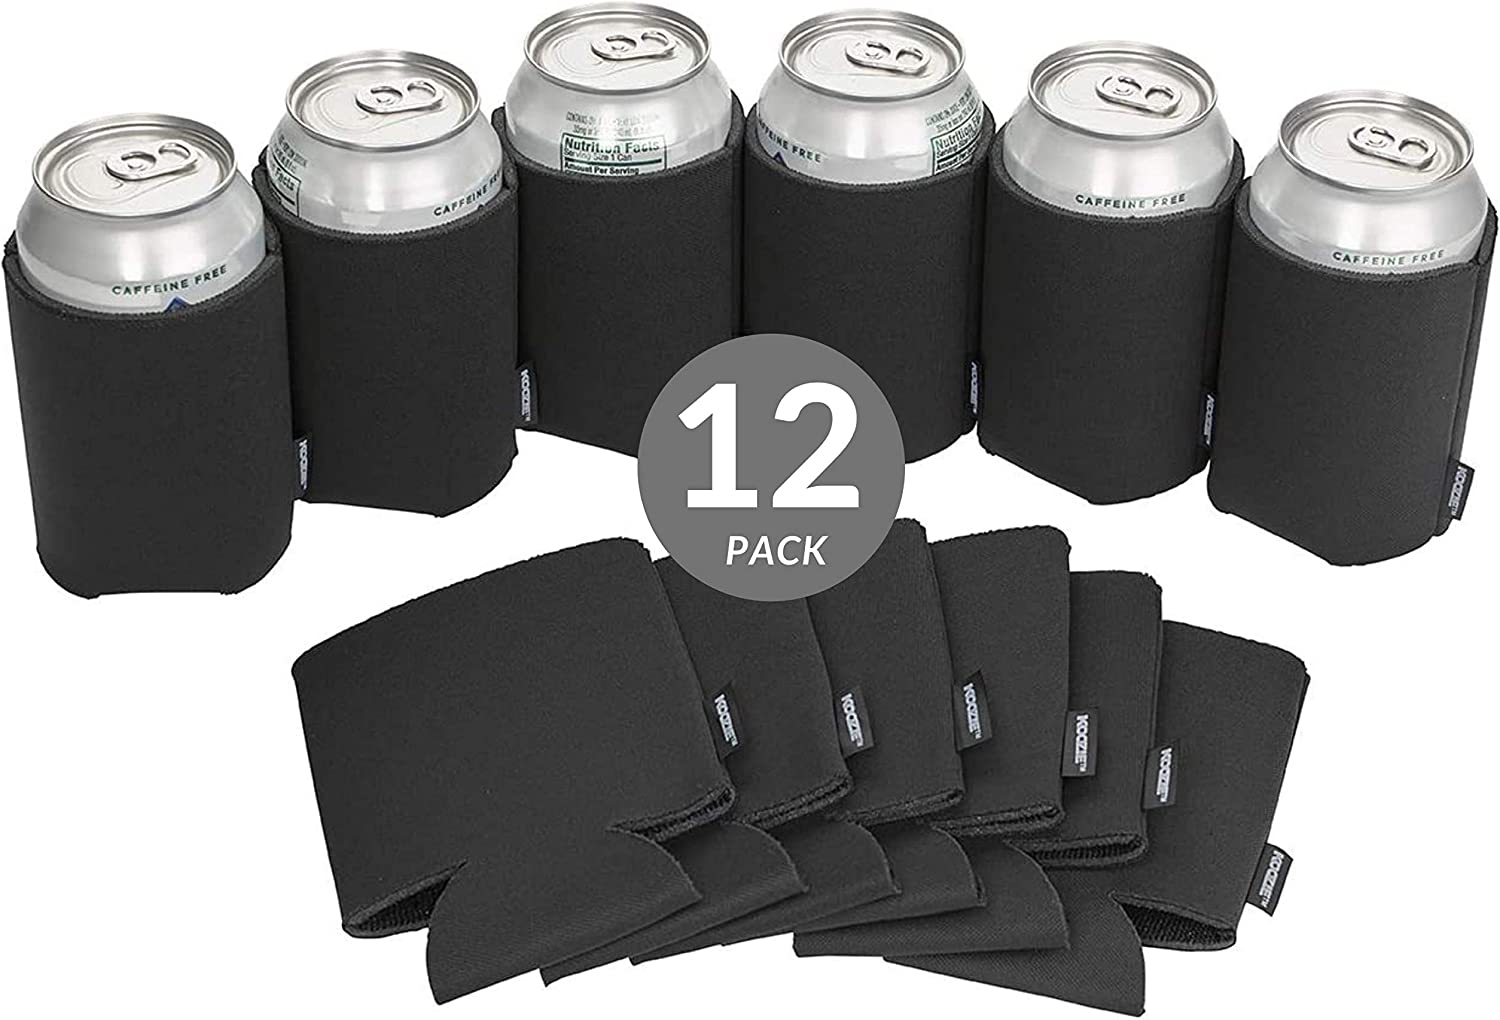 Koozie Can Cooler Blank Beer Koozie for Cans and Water Bottles, Bulk DIY Insulated Beverage Holder Personalized Gifts for Events, Bachelorette Parties, Weddings, Birthdays (Black, 12)